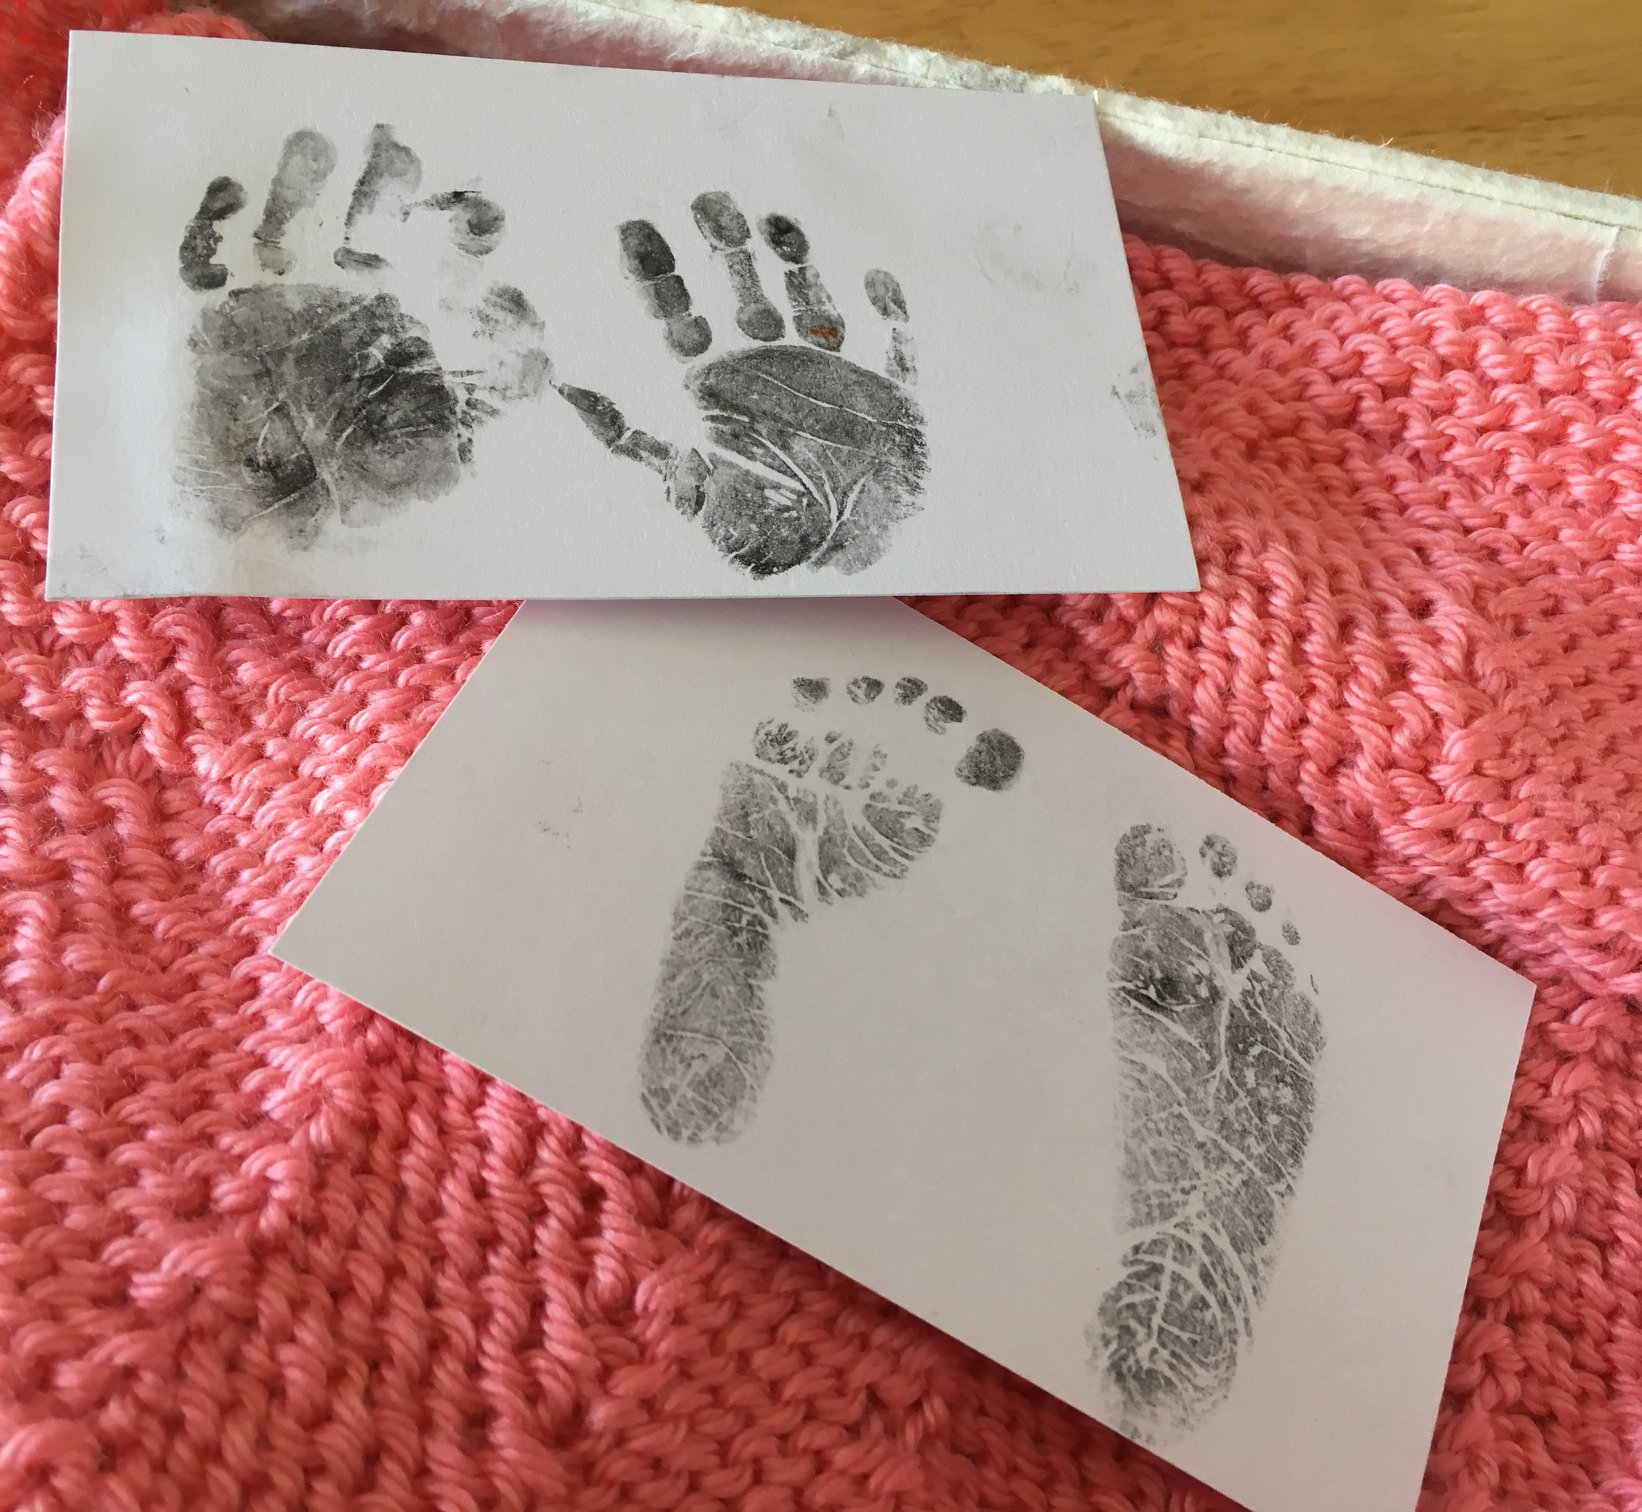 Hands and footprints of a stillborn baby